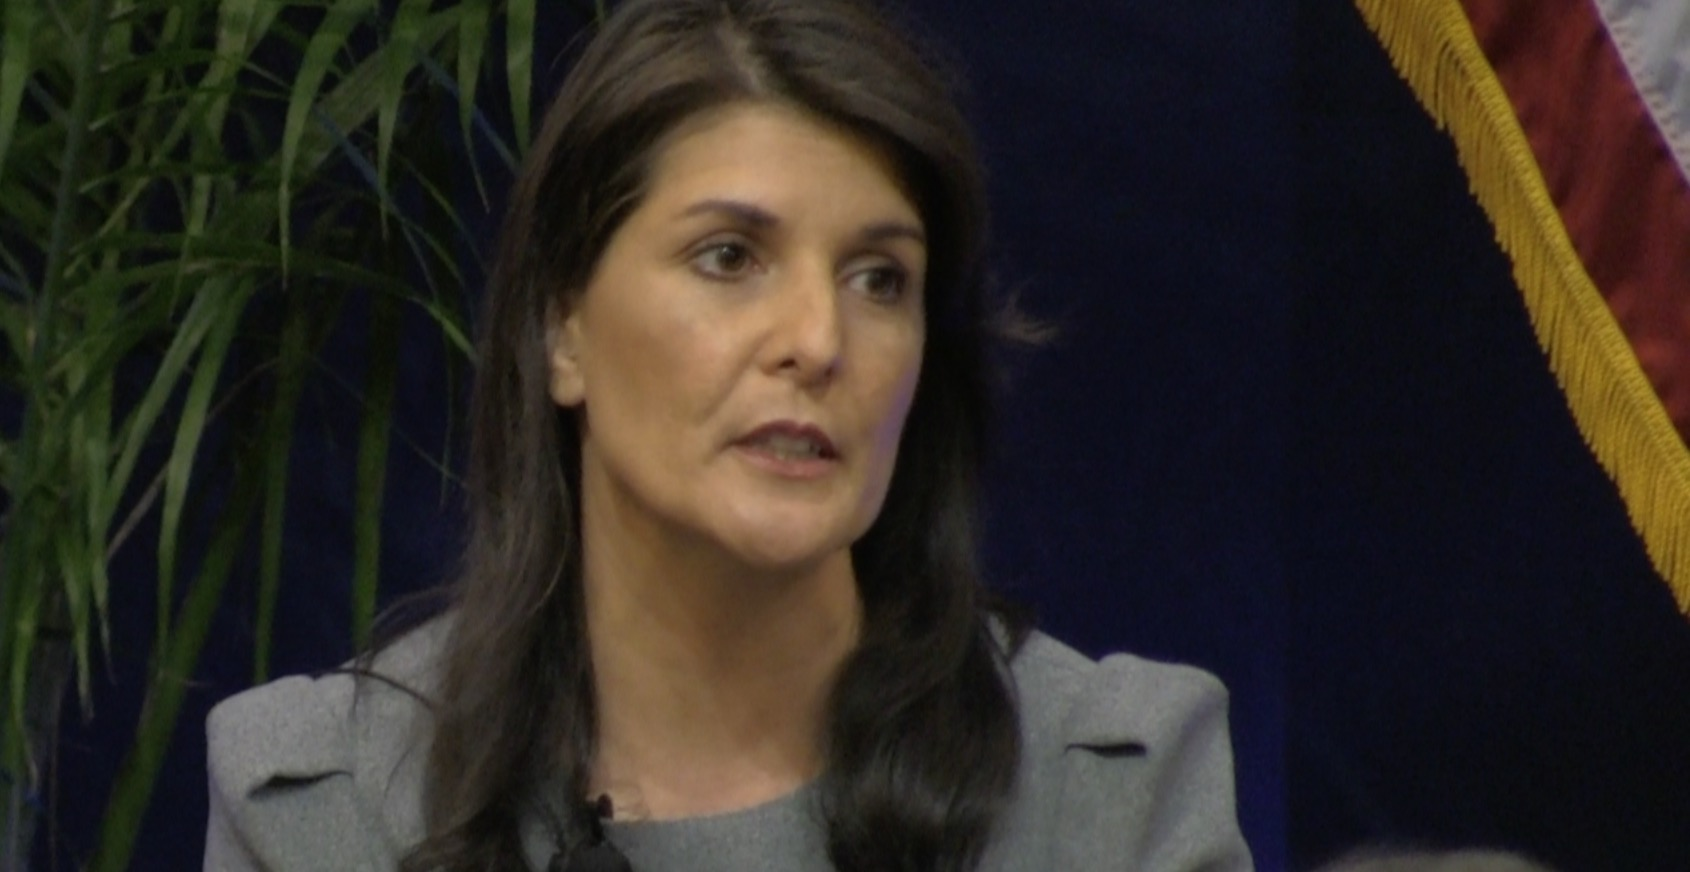 Nikki Haley resigns from her job at U.N.